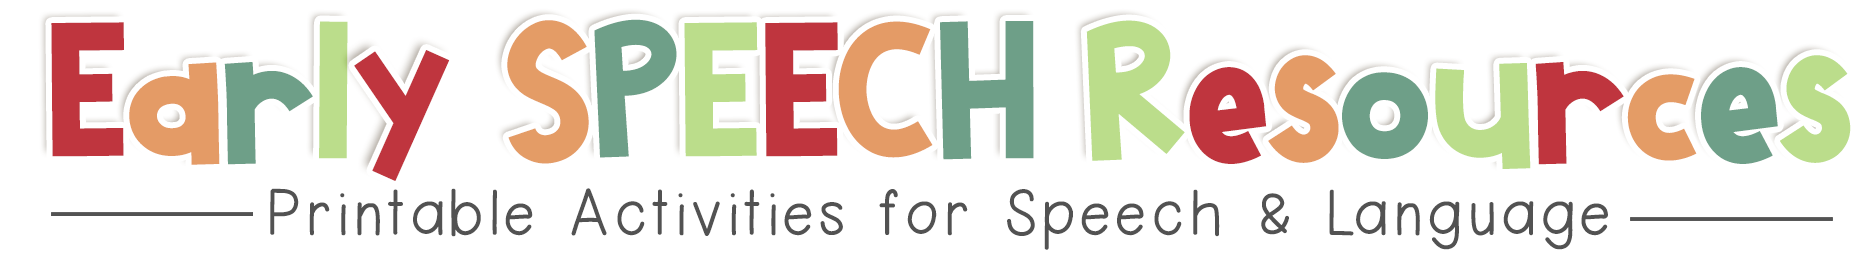 Early Speech Resources